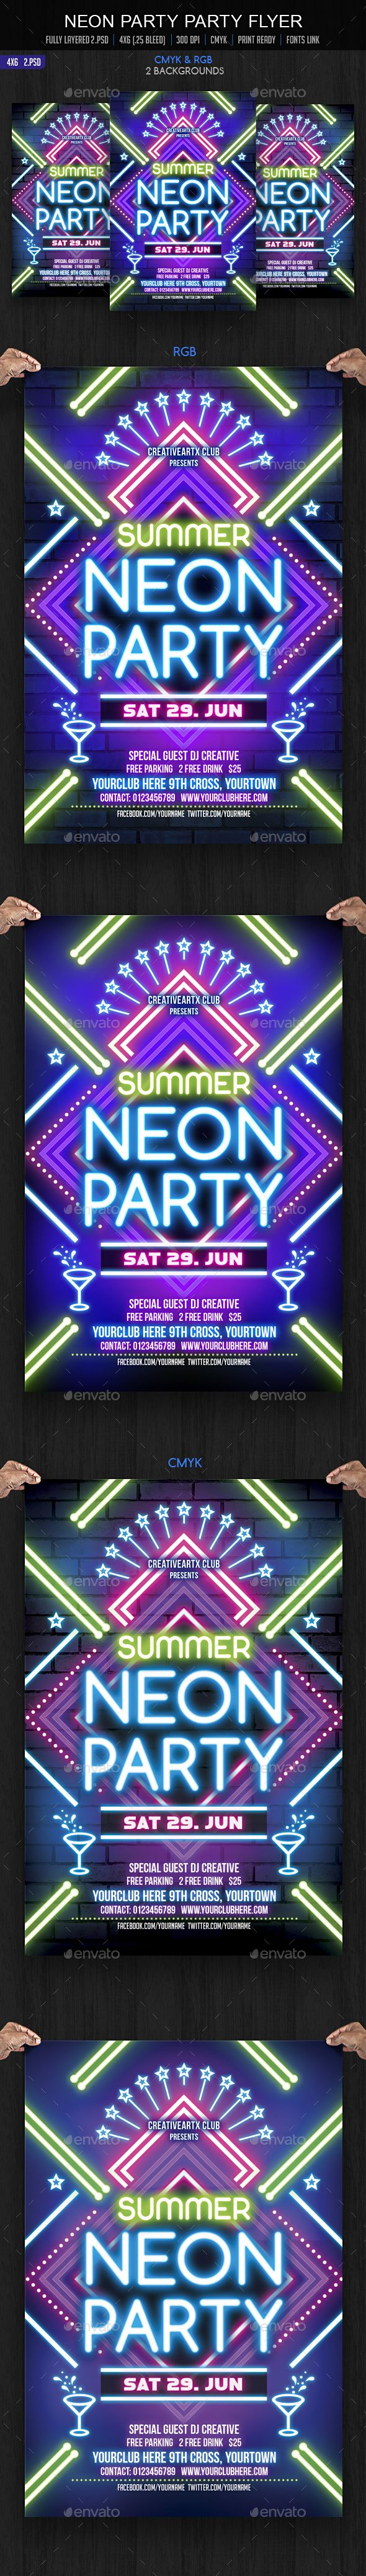 Neon Party Flyer Template PSD. Download here: http://graphicriver.net/item/neon-party-flyer/15839175?ref=ksioks